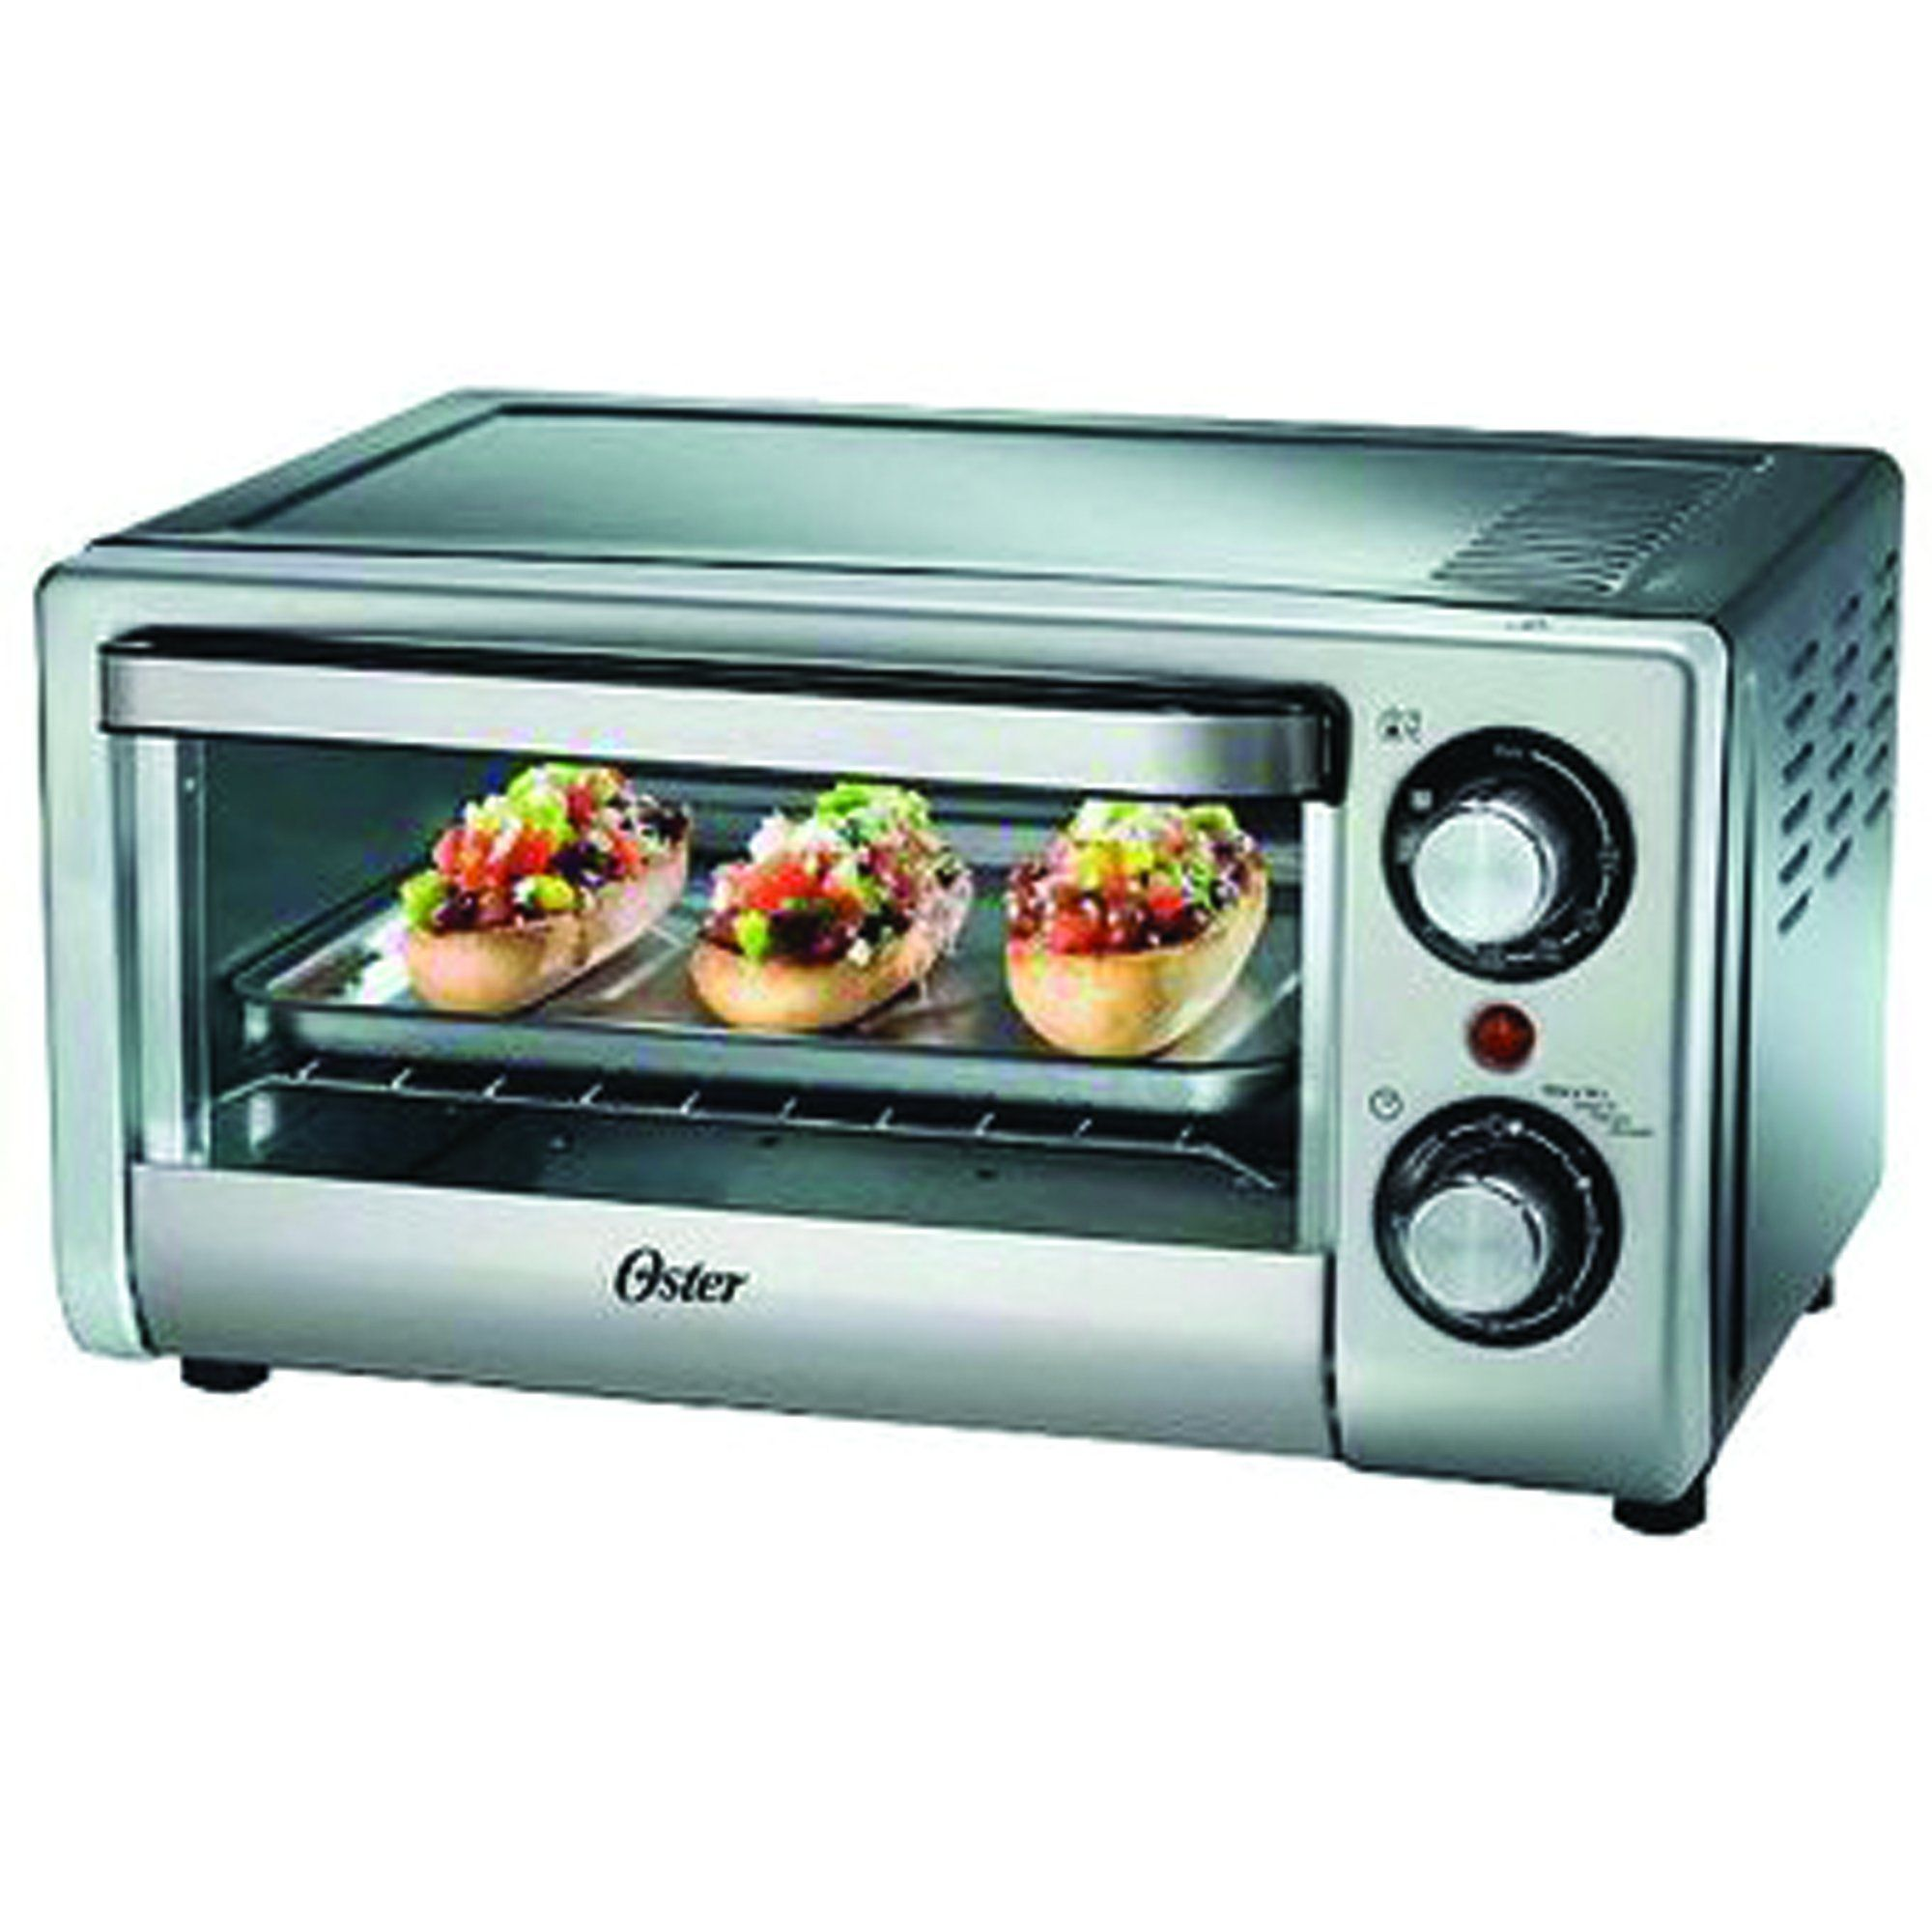 Oster Tssttv10ltb 4 Slice Toaster Oven 220 240 Volts 50 60hz